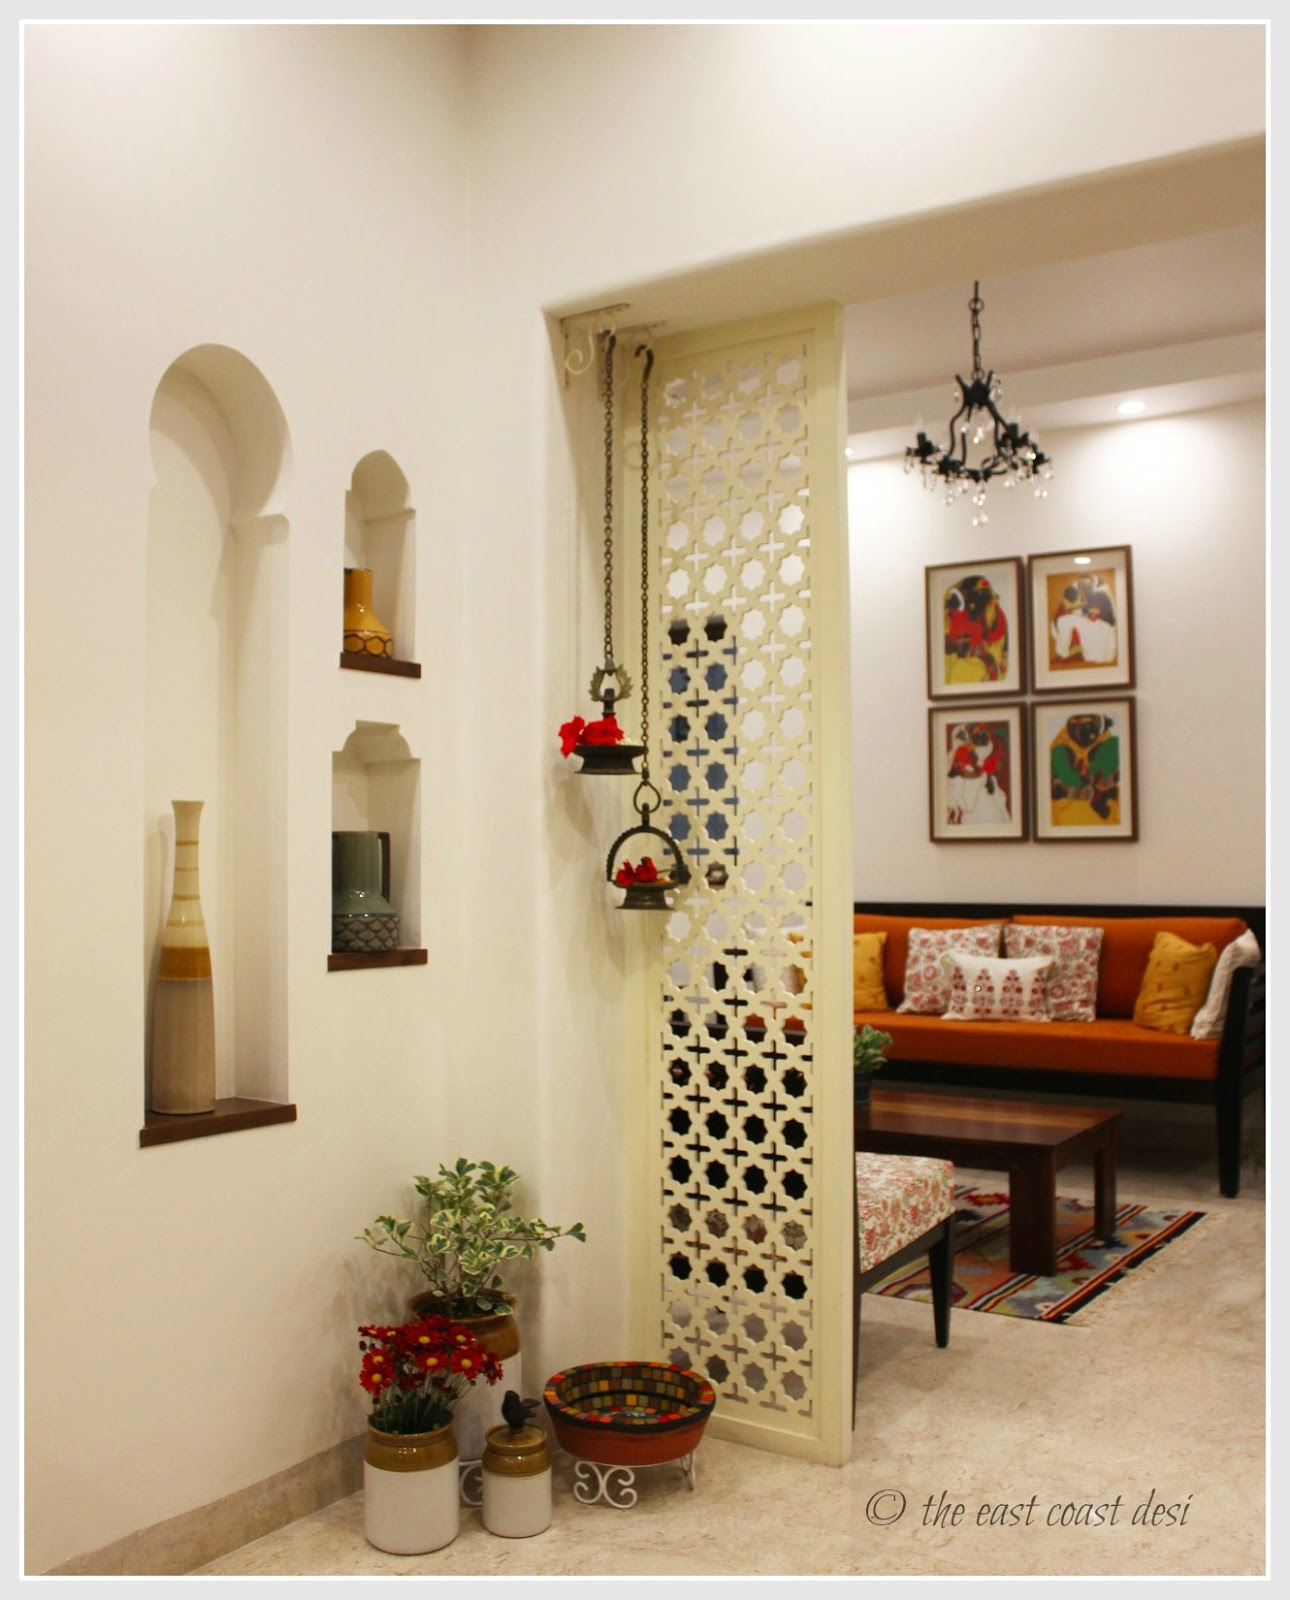 The east coast desi keeping it elegantly eclectic home tour for Home decorating ideas indian style